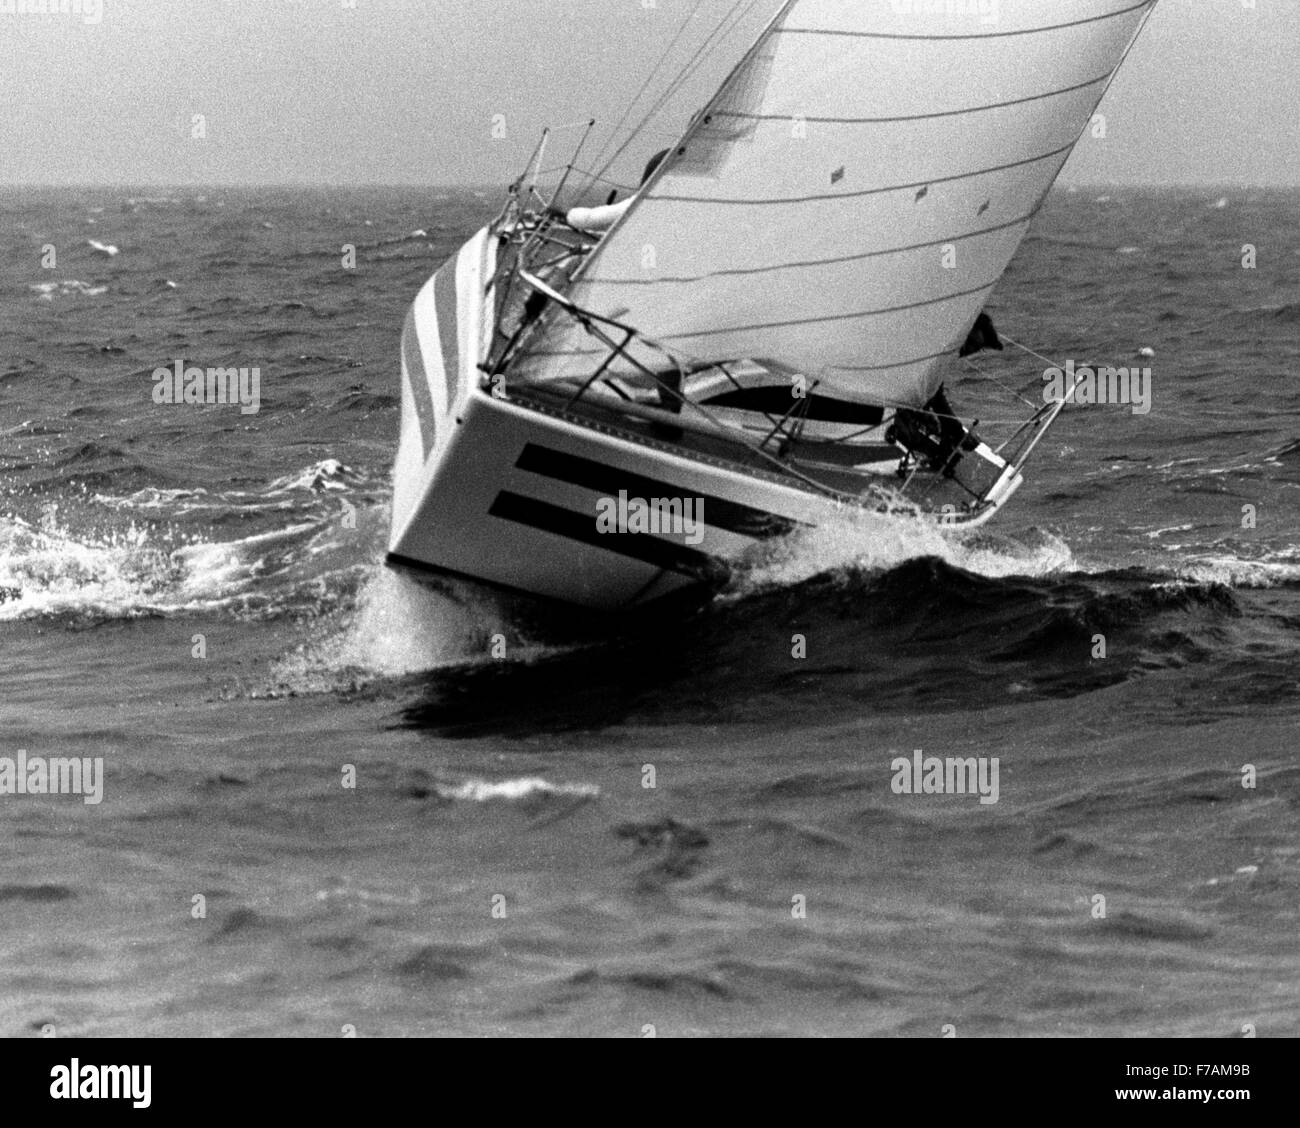 AJAXNETPHOTO. 1979. SCHEVENINGEN, HOLLAND. - HALF TON WORLD CHAMPIONSHIPS - SMIFFY COMPETING IN THE WORLD CHAMPIONSHIPS. - Stock Image